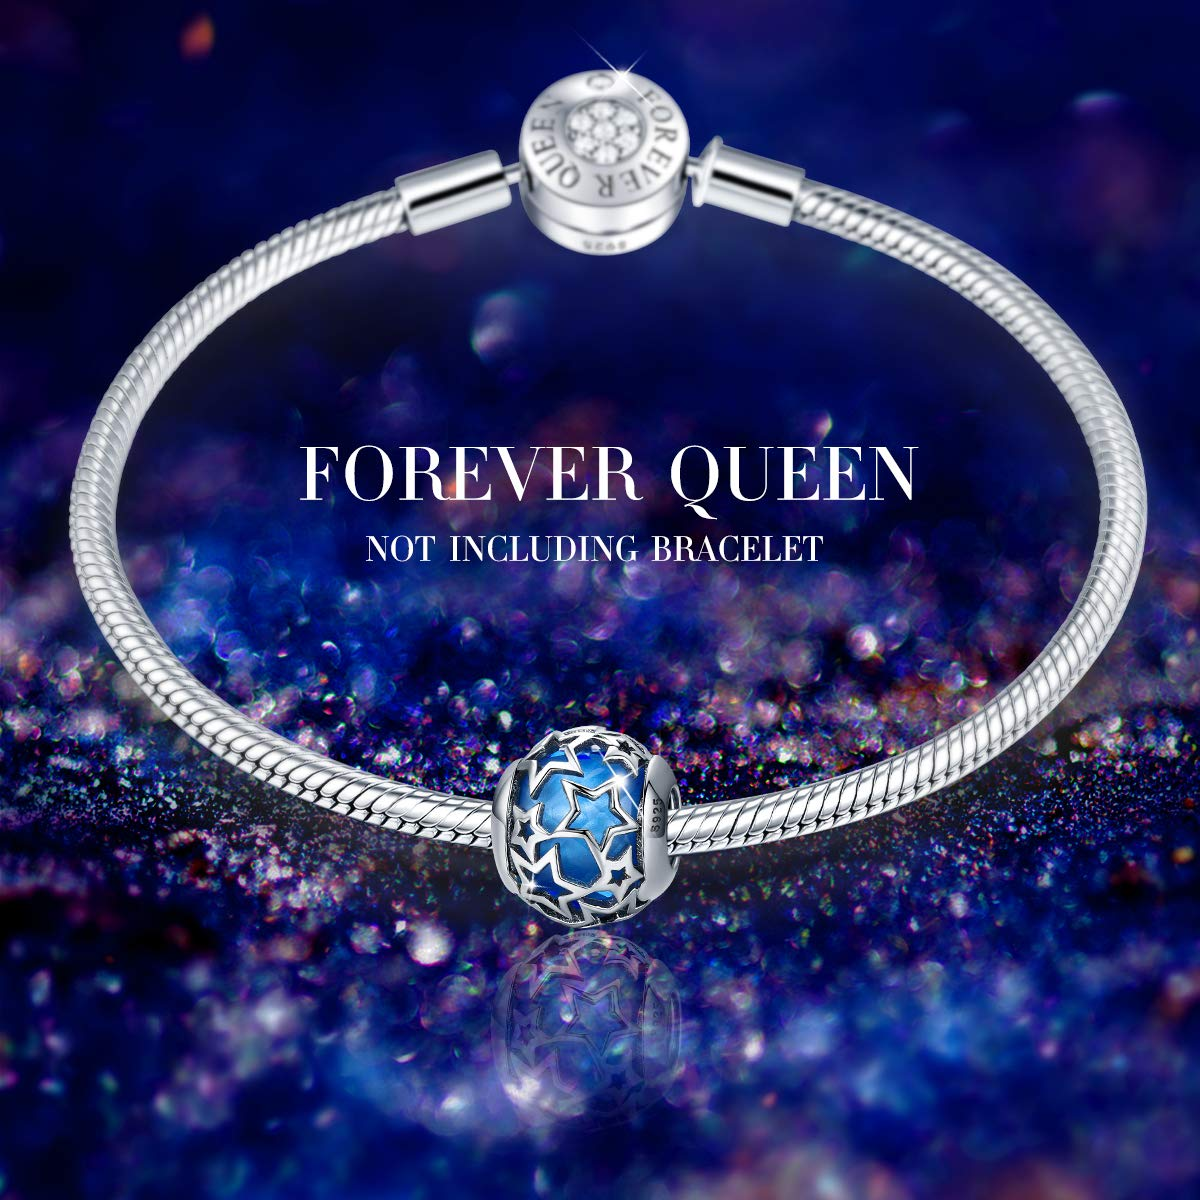 c4c47ffa5599b FOREVER QUEEN Starry Night Charm for Bracelet 925 Sterling Silver Stars  Murano Glass Charms Beads Fit for Bracelet & Necklaces Gifts for Women Box  ...